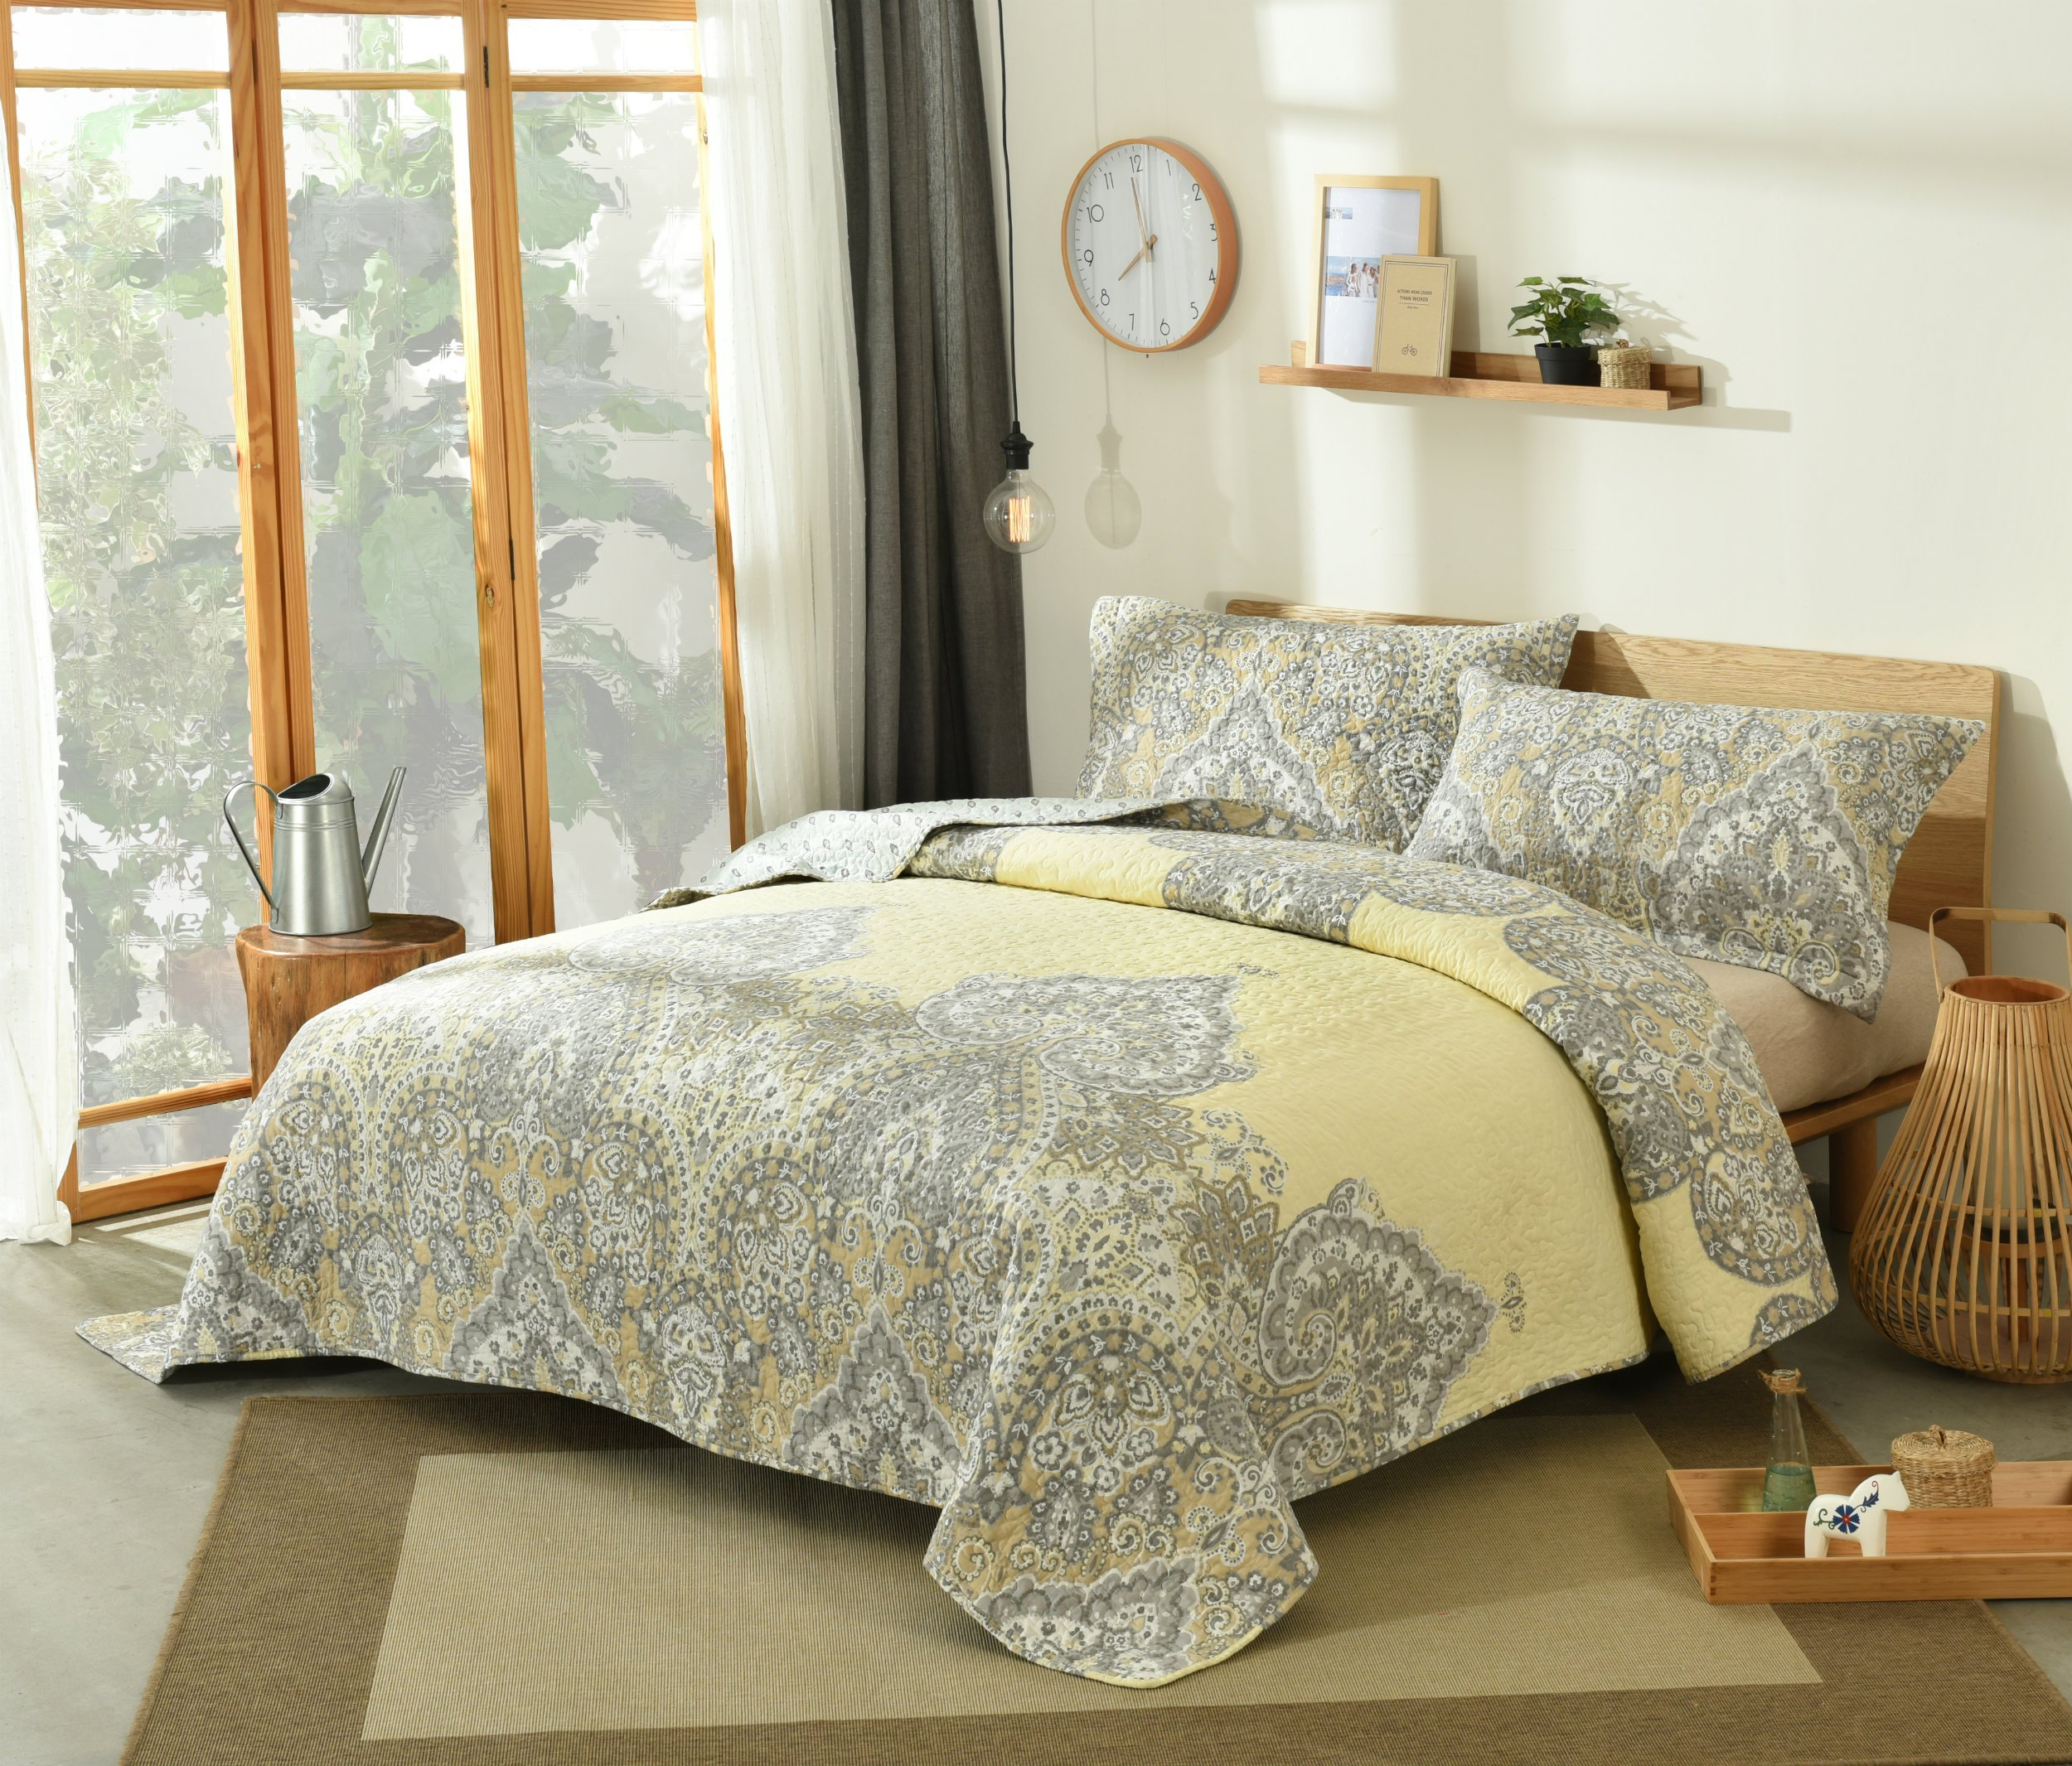 DaDa Bedding Pale Daffodil Bedspread Set - Bohemian Light Yellow Grey Floral Paisley - Full - 3-Pieces